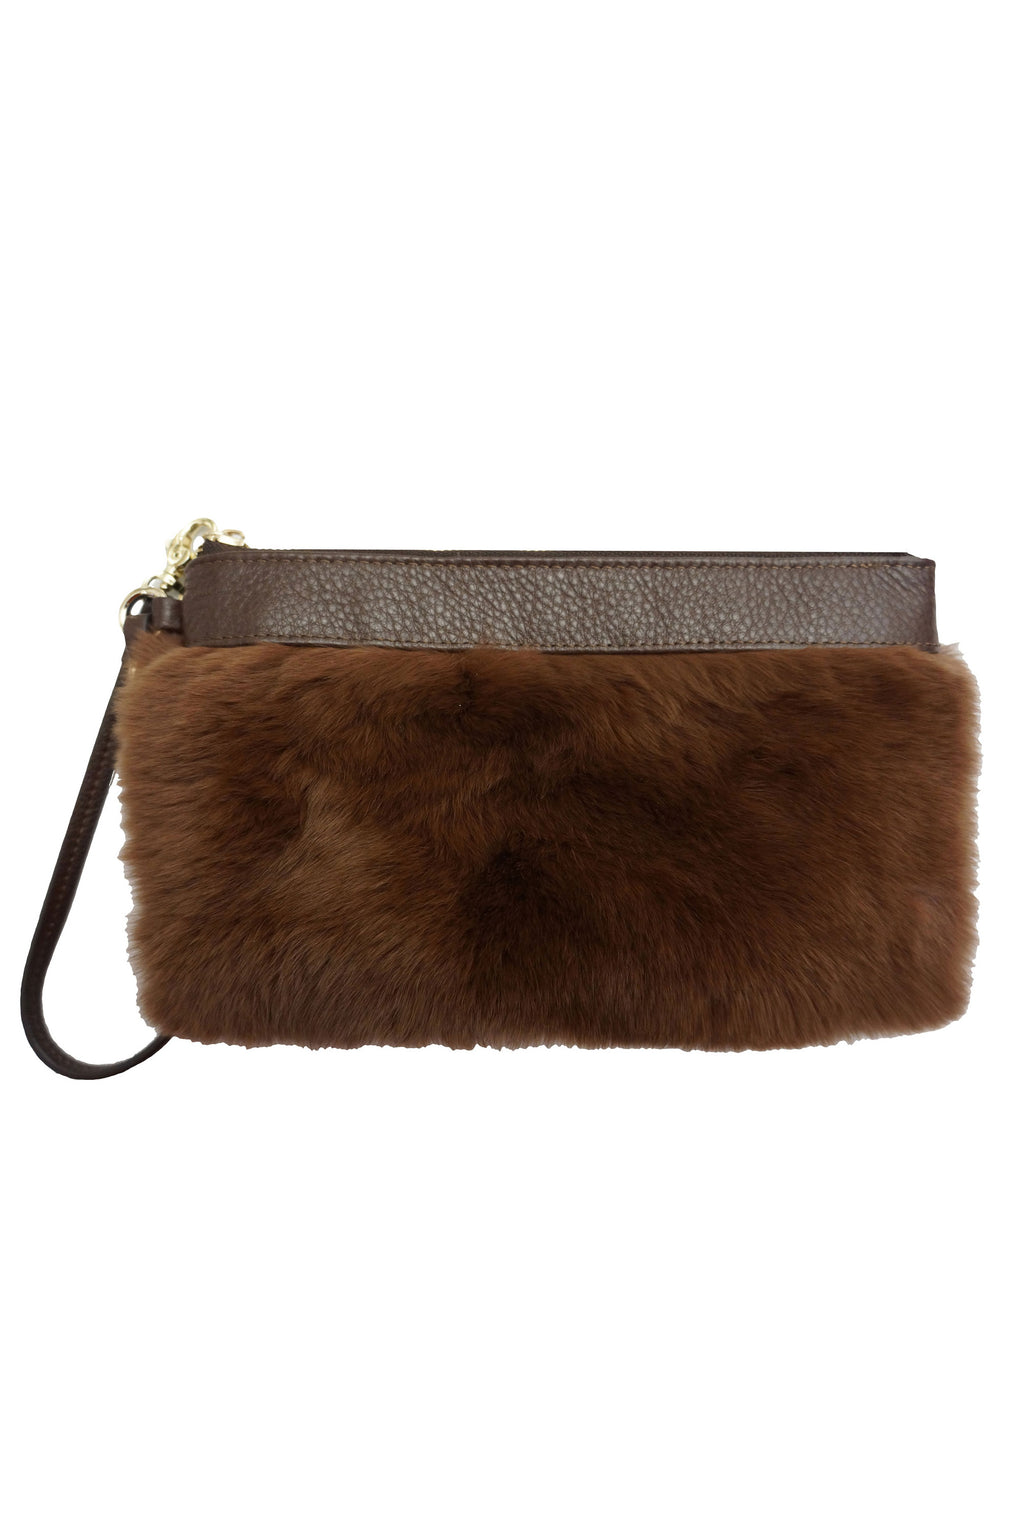 Patent Leather Wristlet with Rex Fur